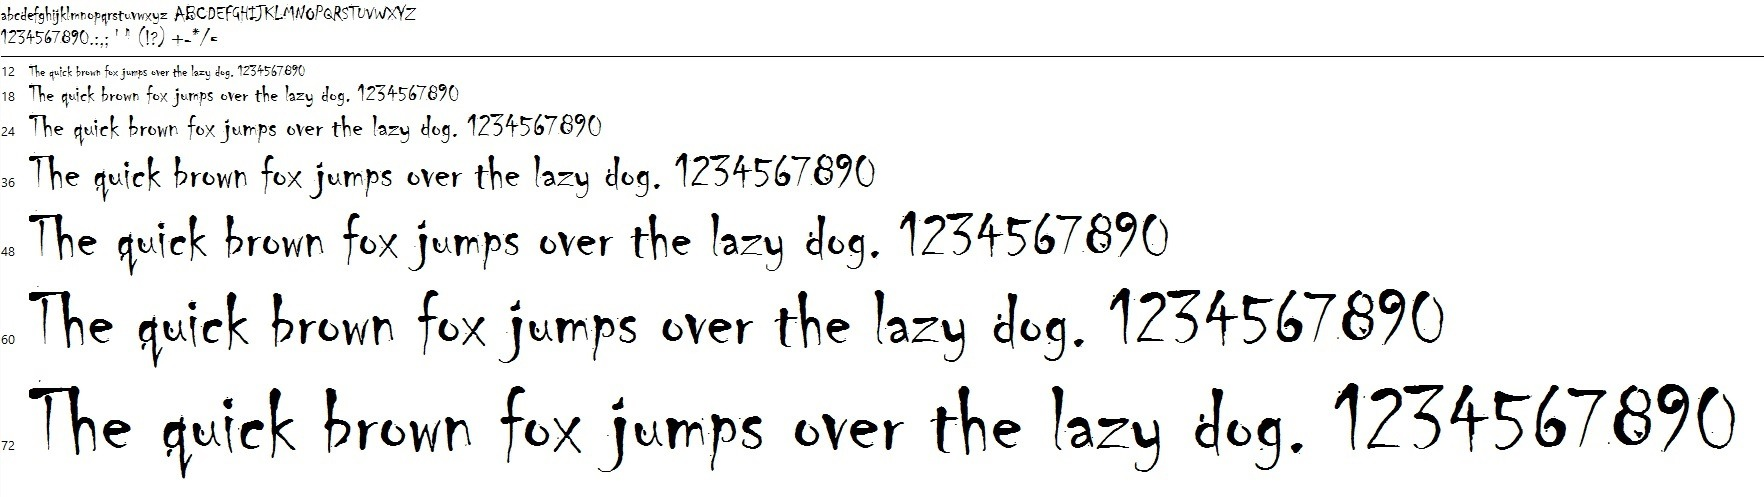 the quick brown fox jumps... example of a font for powerpoint